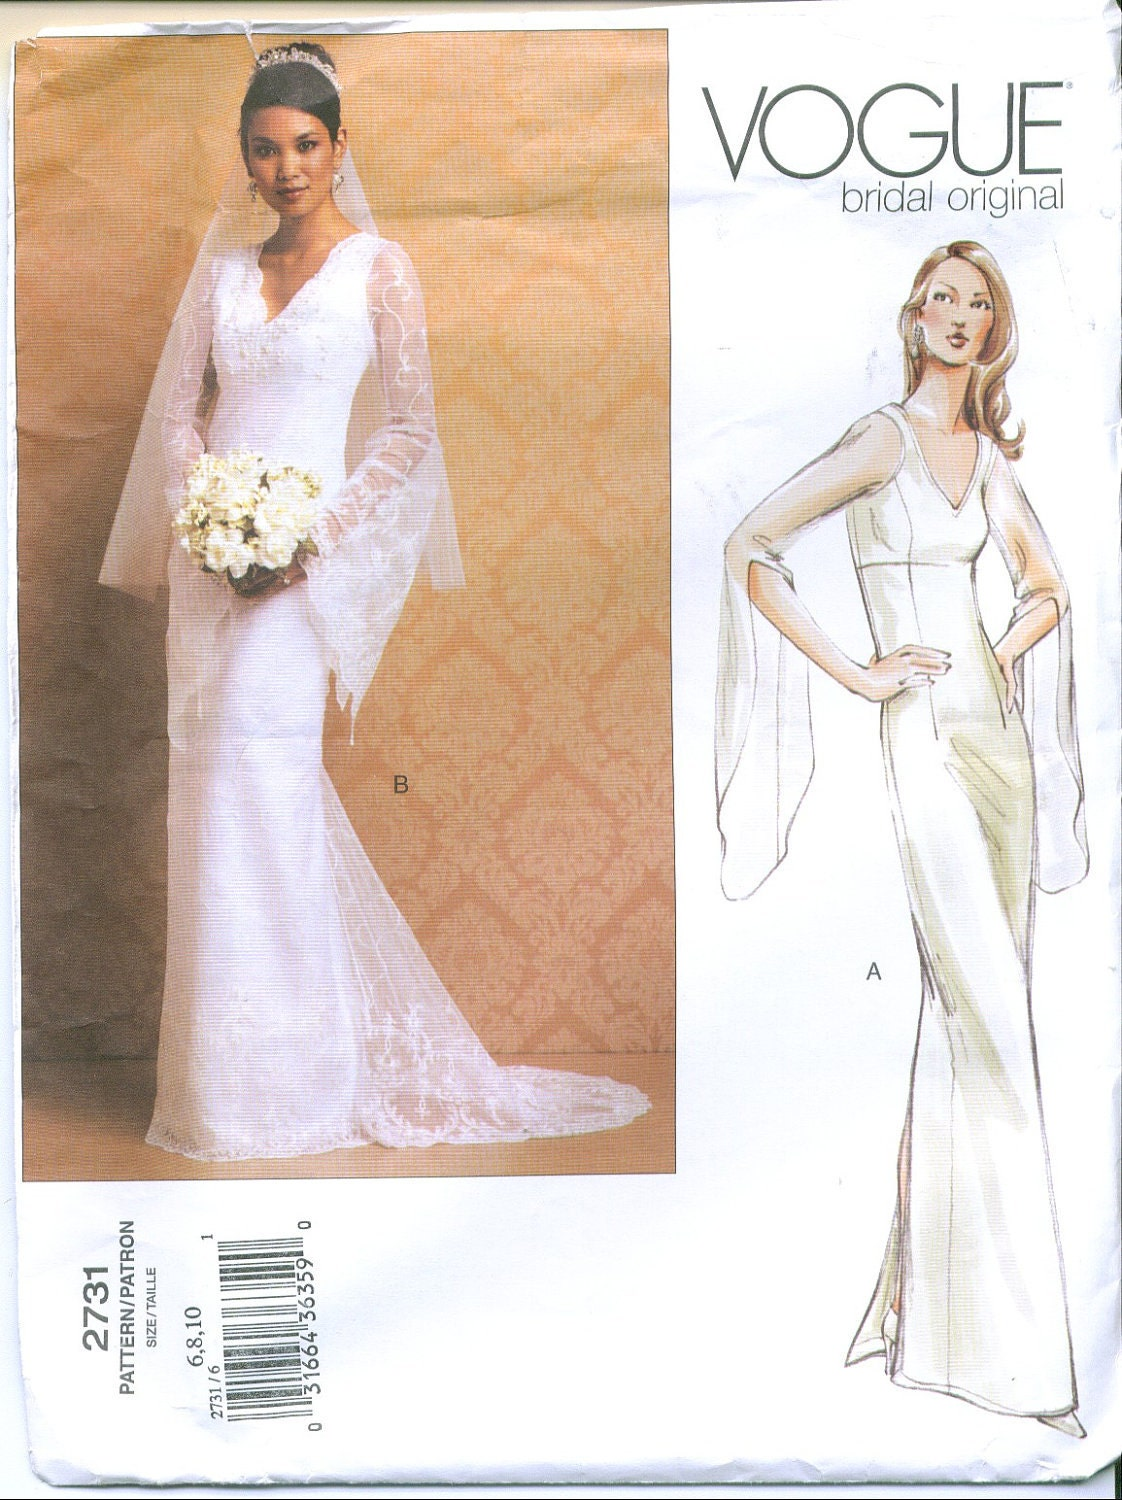 Vogue 2731 bridal wedding gown sewing pattern by sewingandsuch for How to make a wedding dress pattern